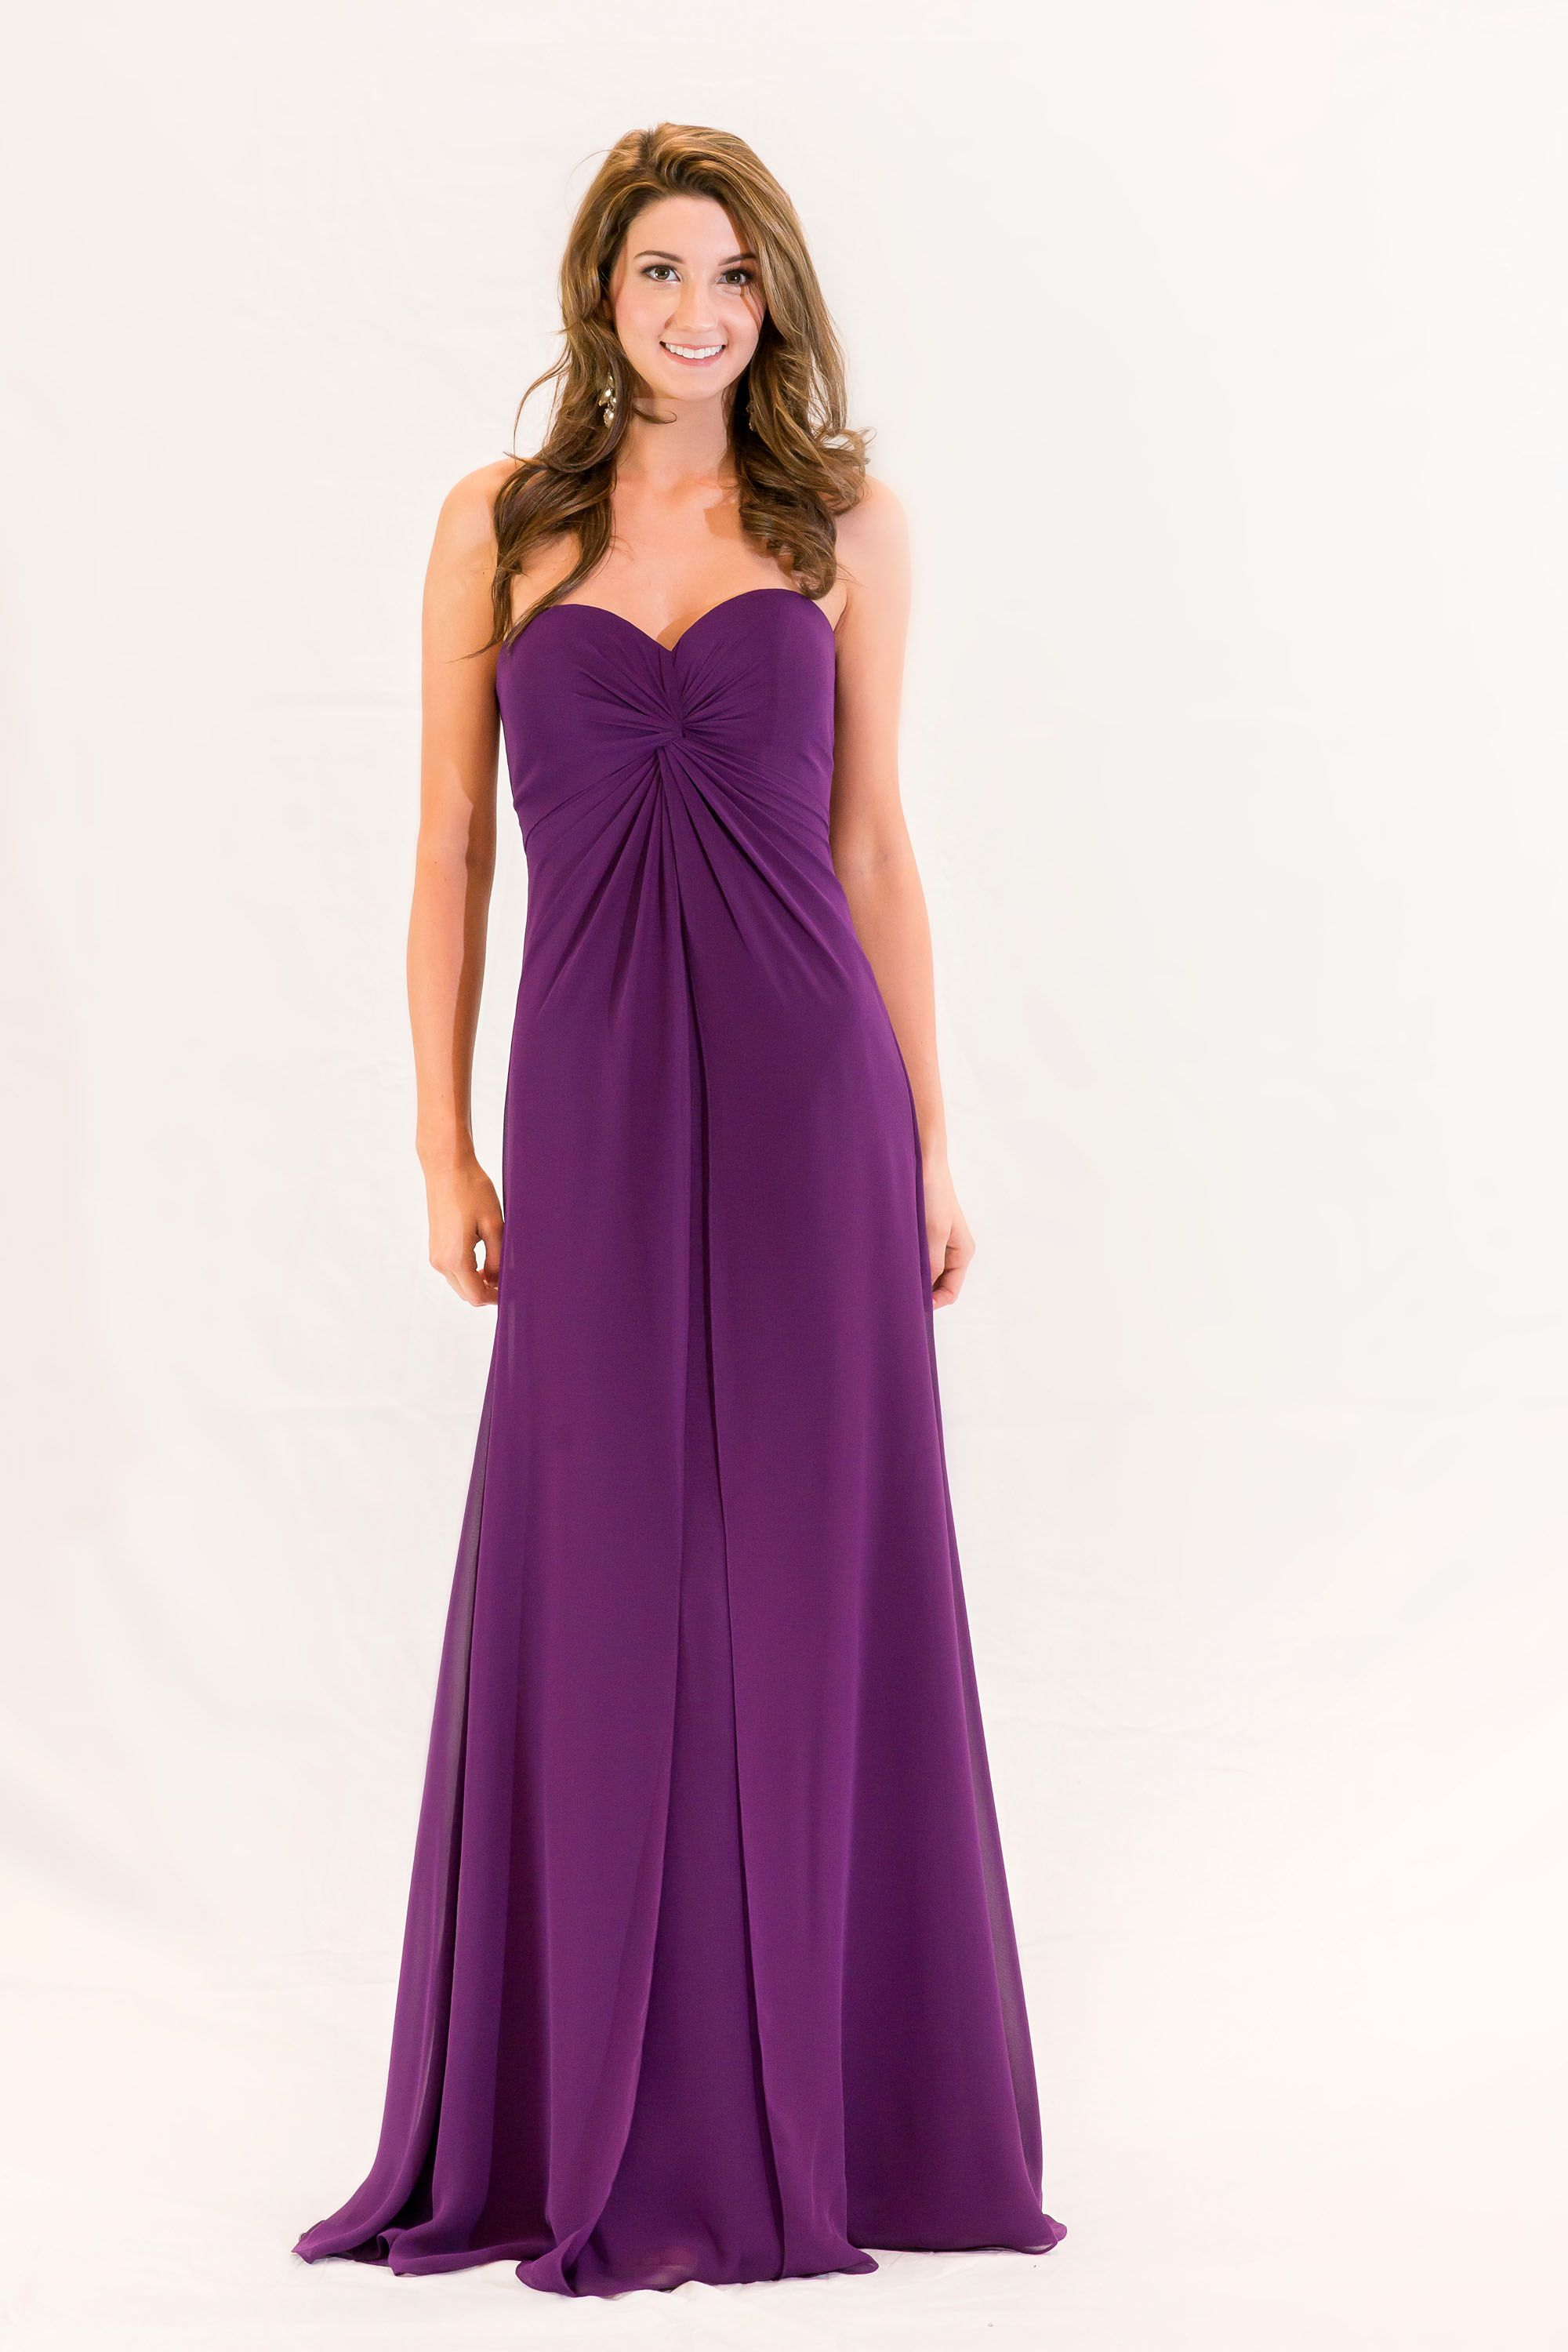 NEW Bridesmaid Dress from Kanali K Style Number 1654 #dressesbyrusso ...